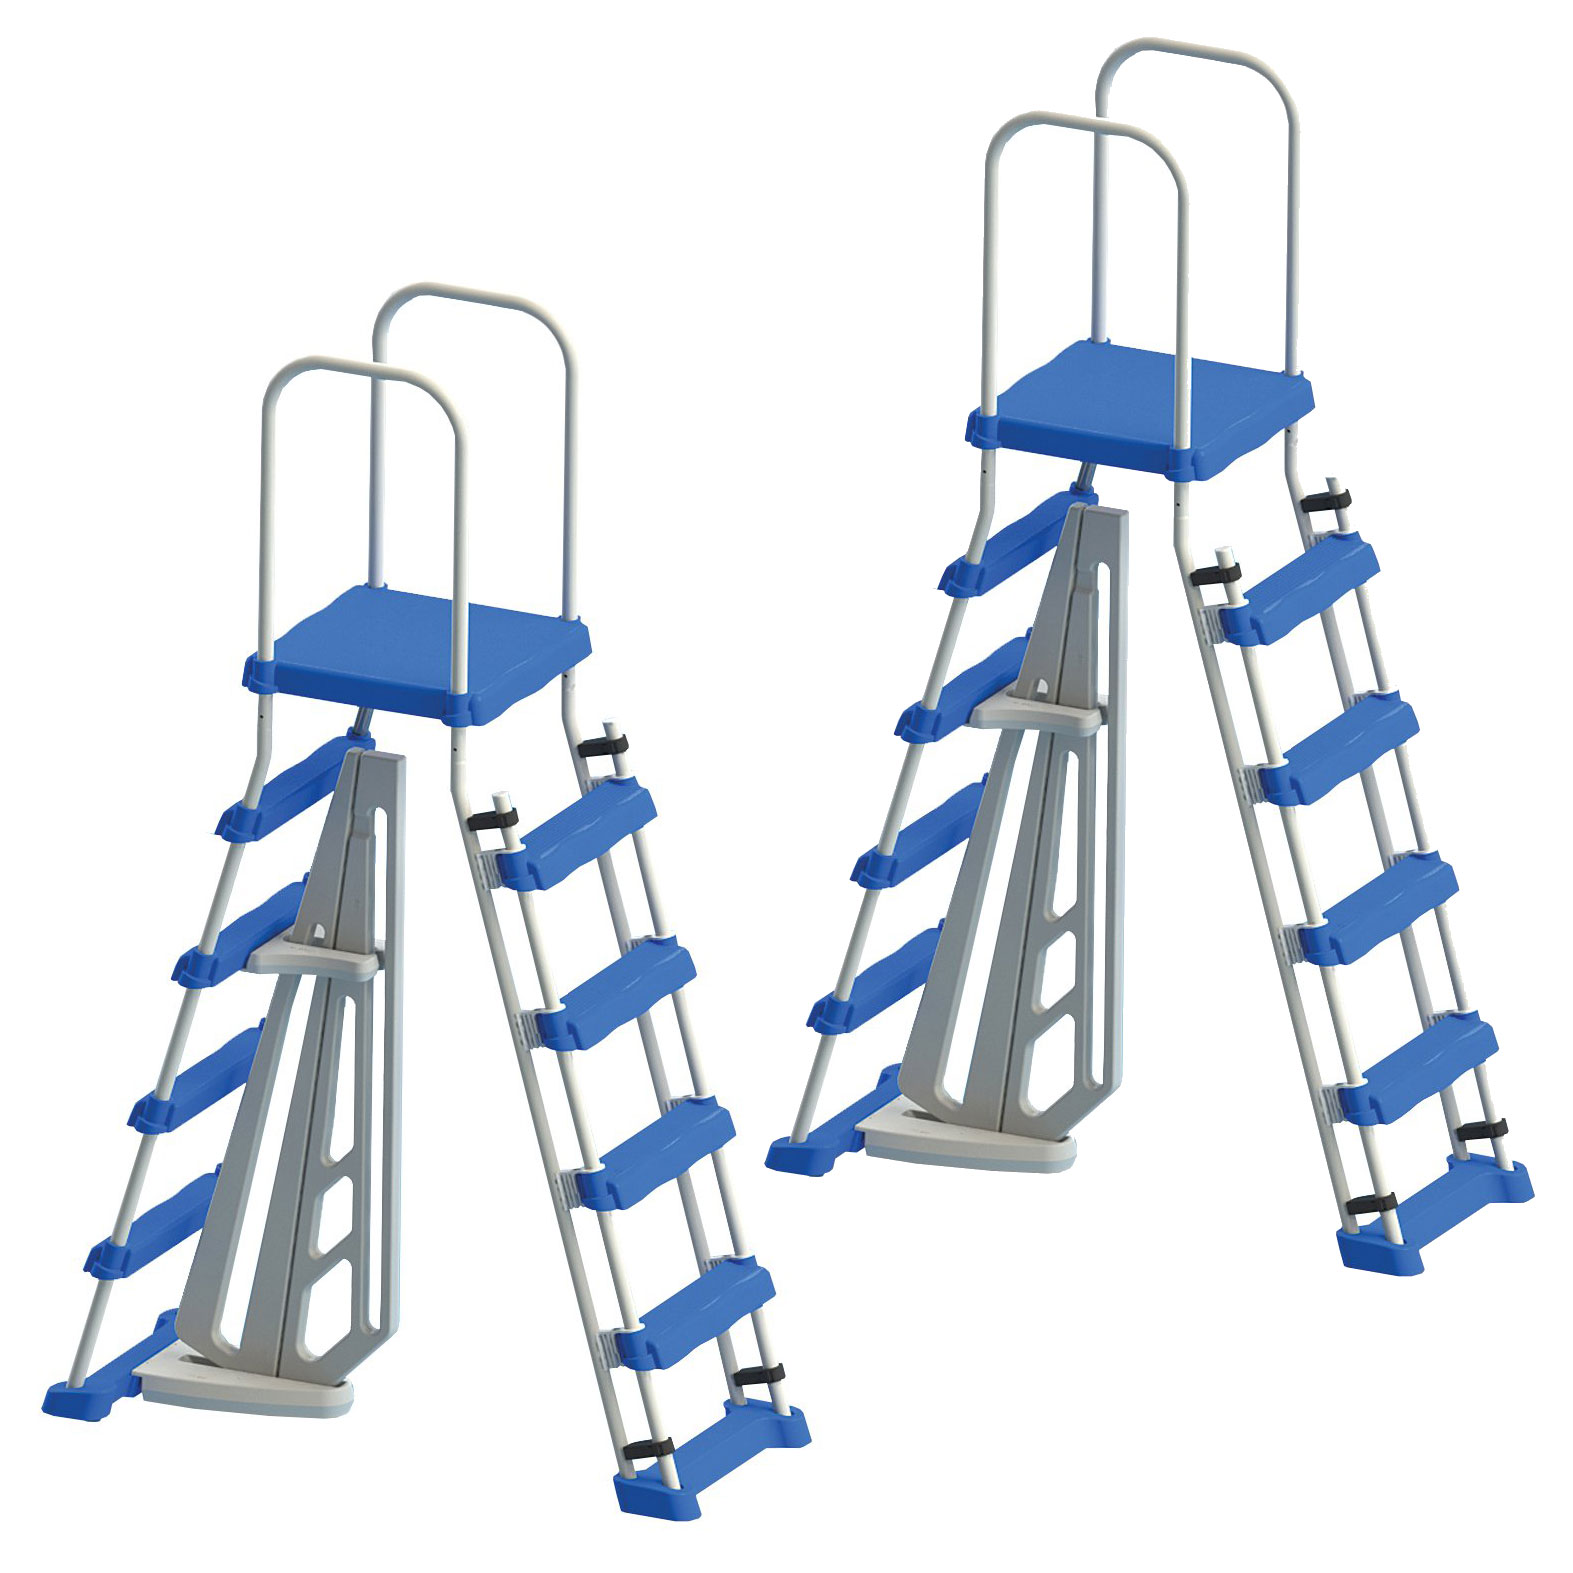 """Swimline Above Ground Pool A Frame Ladder with Barrier for 48"""" Pools (2 Pack)"""